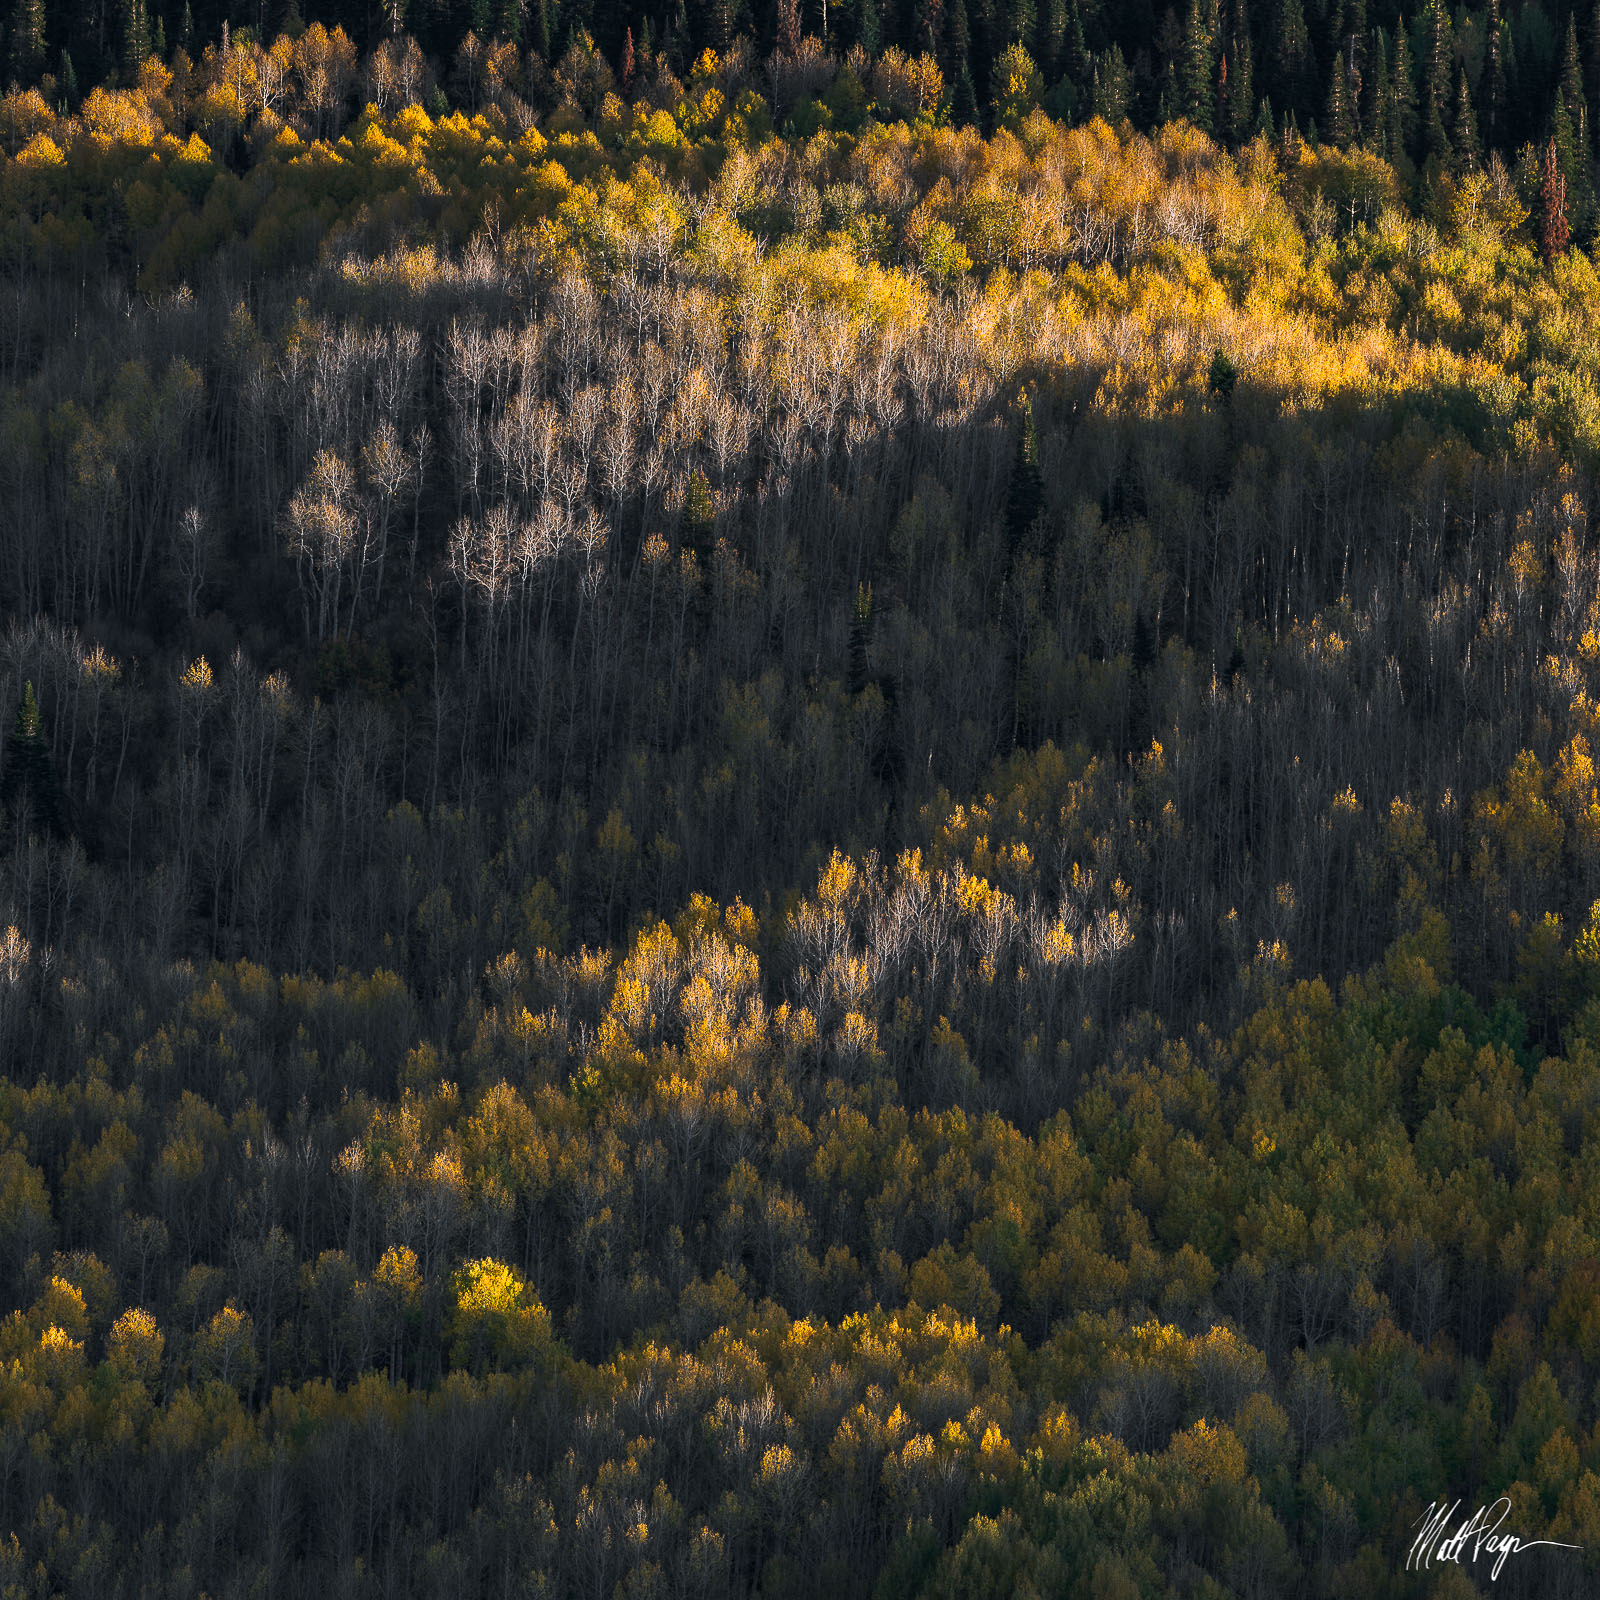 Aspen Trees, Autumn, Colorado, Ridgway, hillside, photo